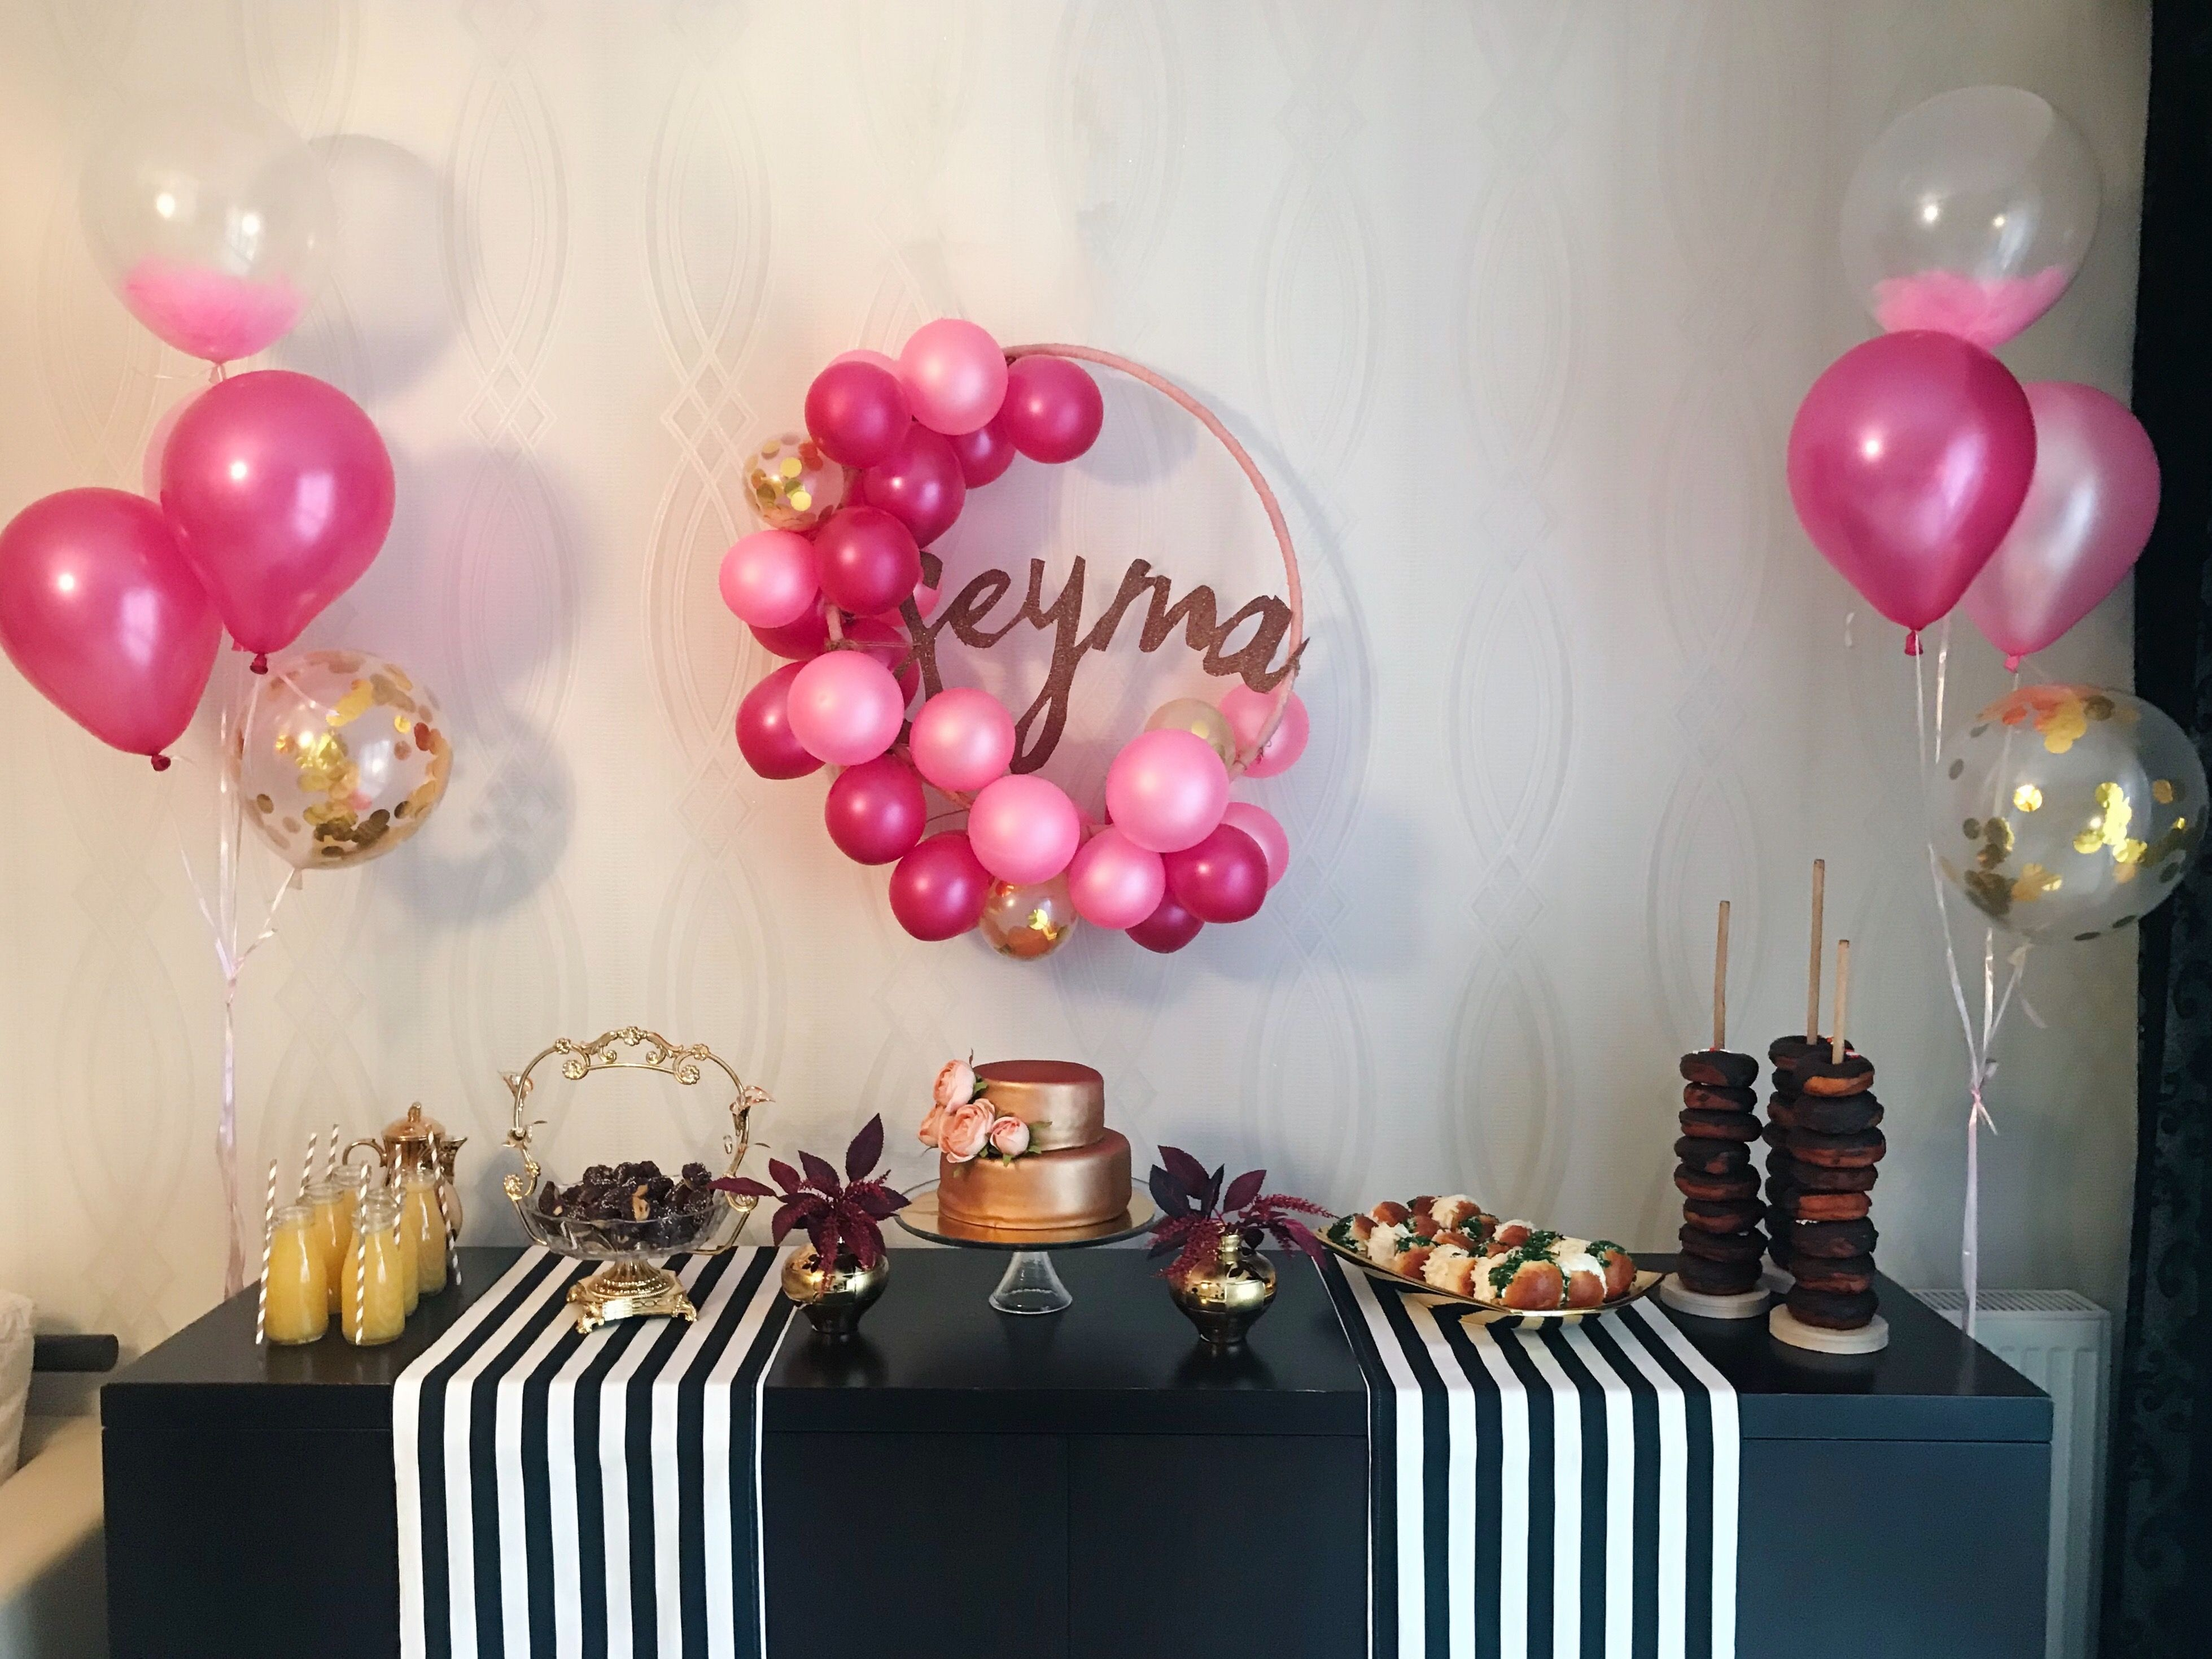 Rose Gold Birthday Cake Pink Maroon Balloons Striped Runner Table Party Decoration